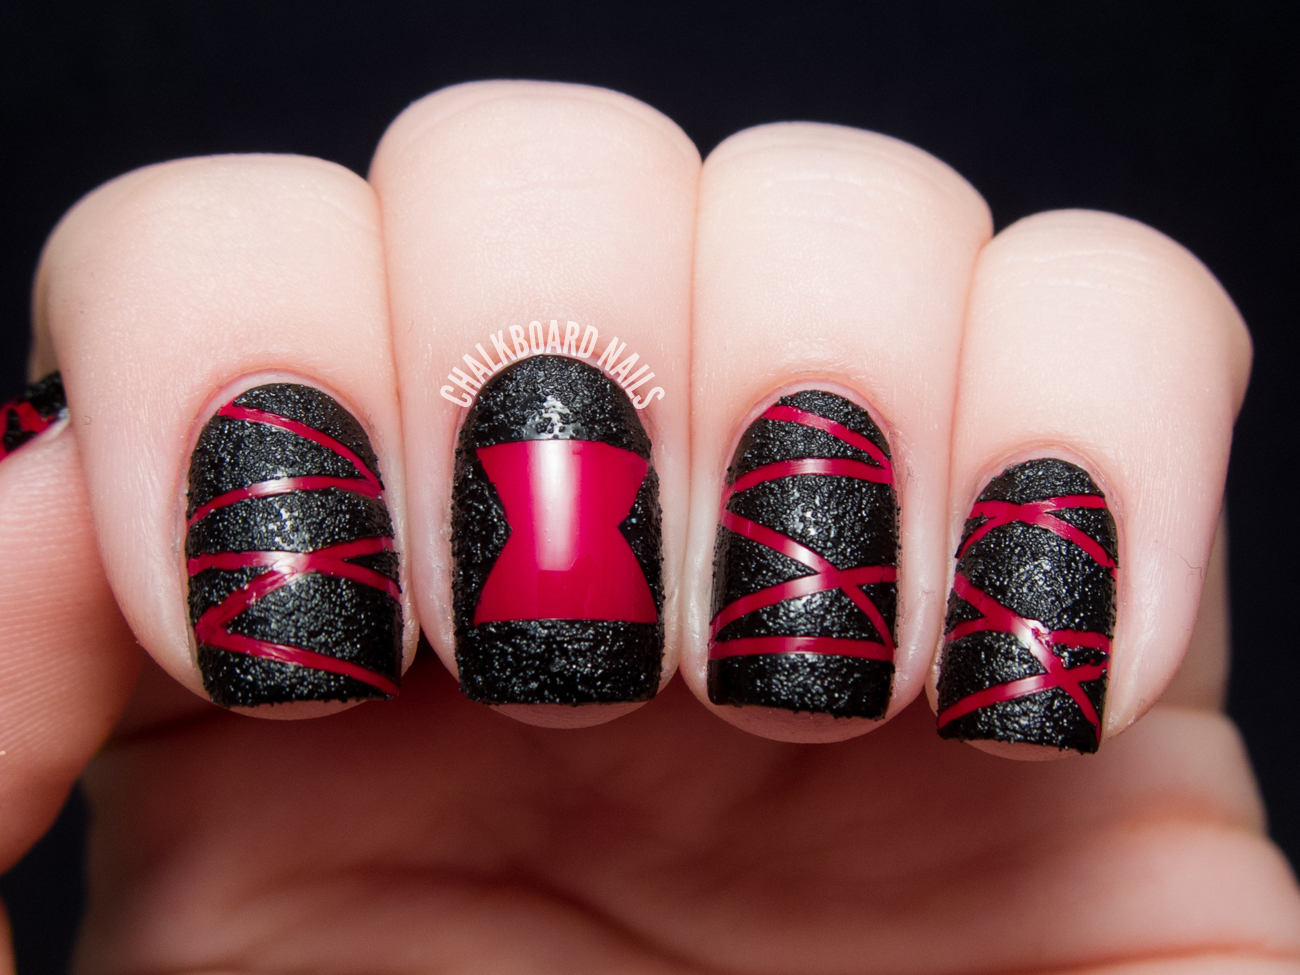 Easy Nail Designs Halloween Intended For Your Inspiration